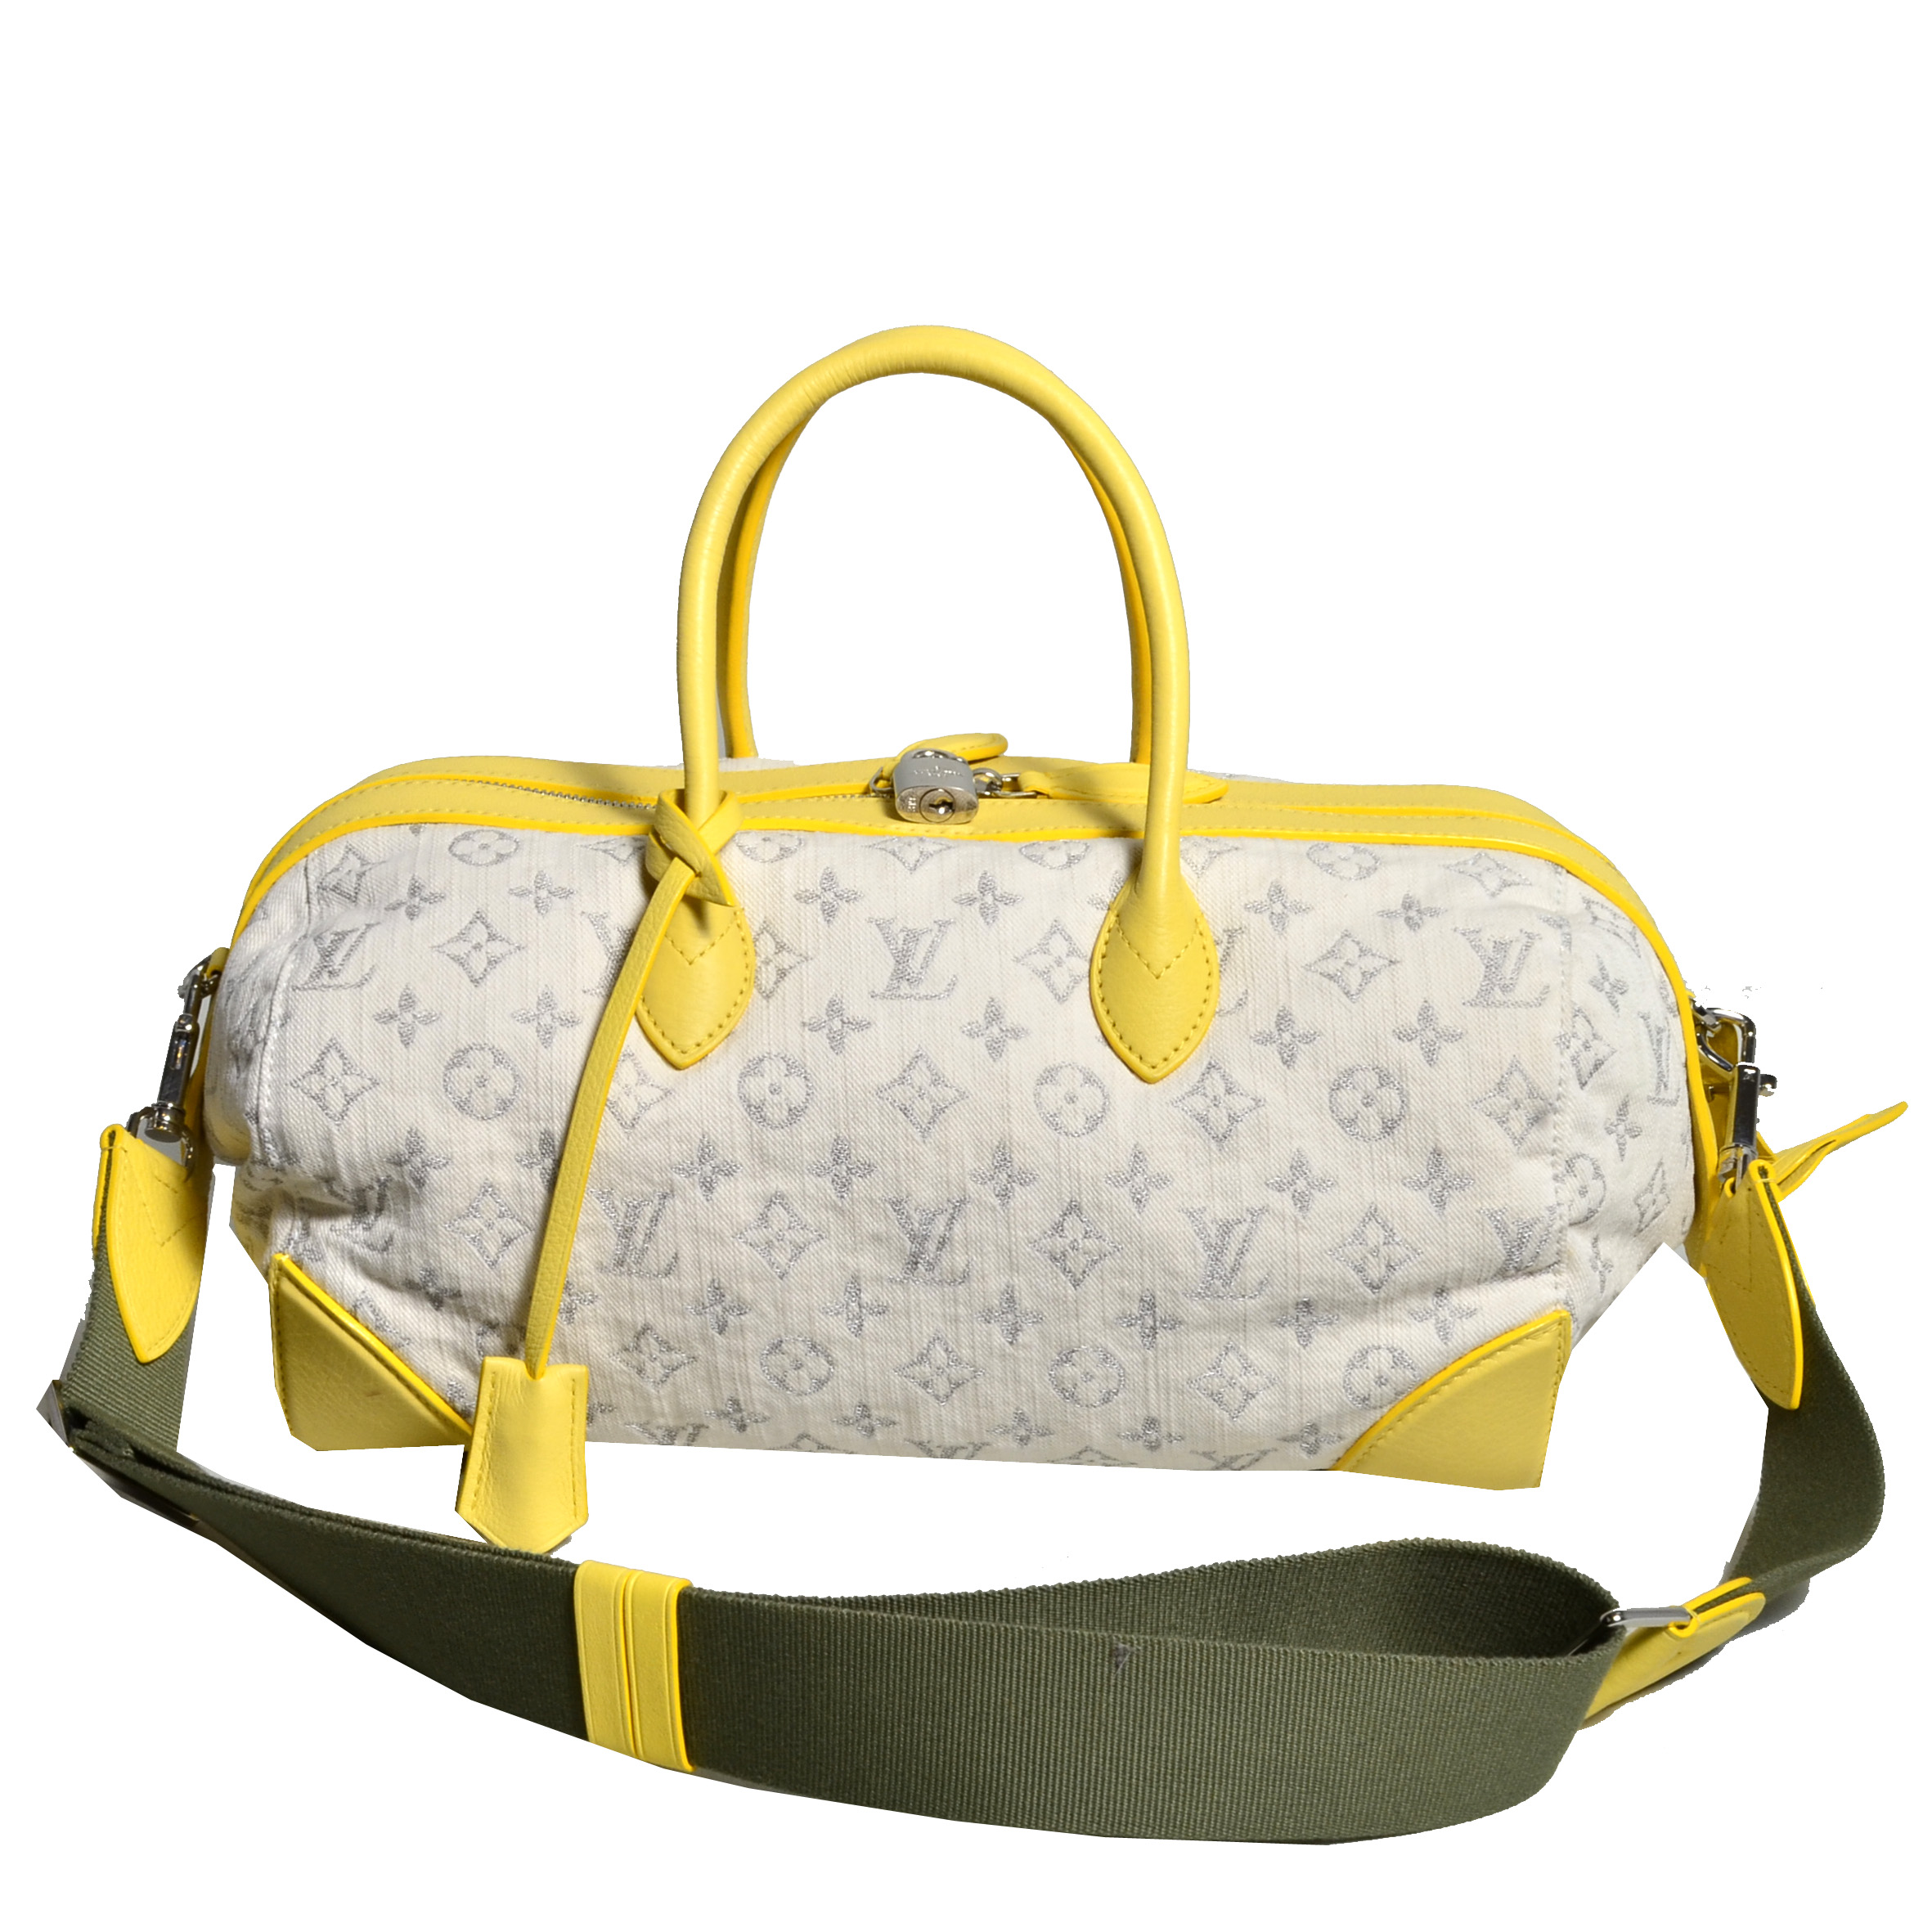 ef4c952835e3 Louis Vuitton Jaune Denim Mm Monogram Round Shoulder Bag8 Kopie